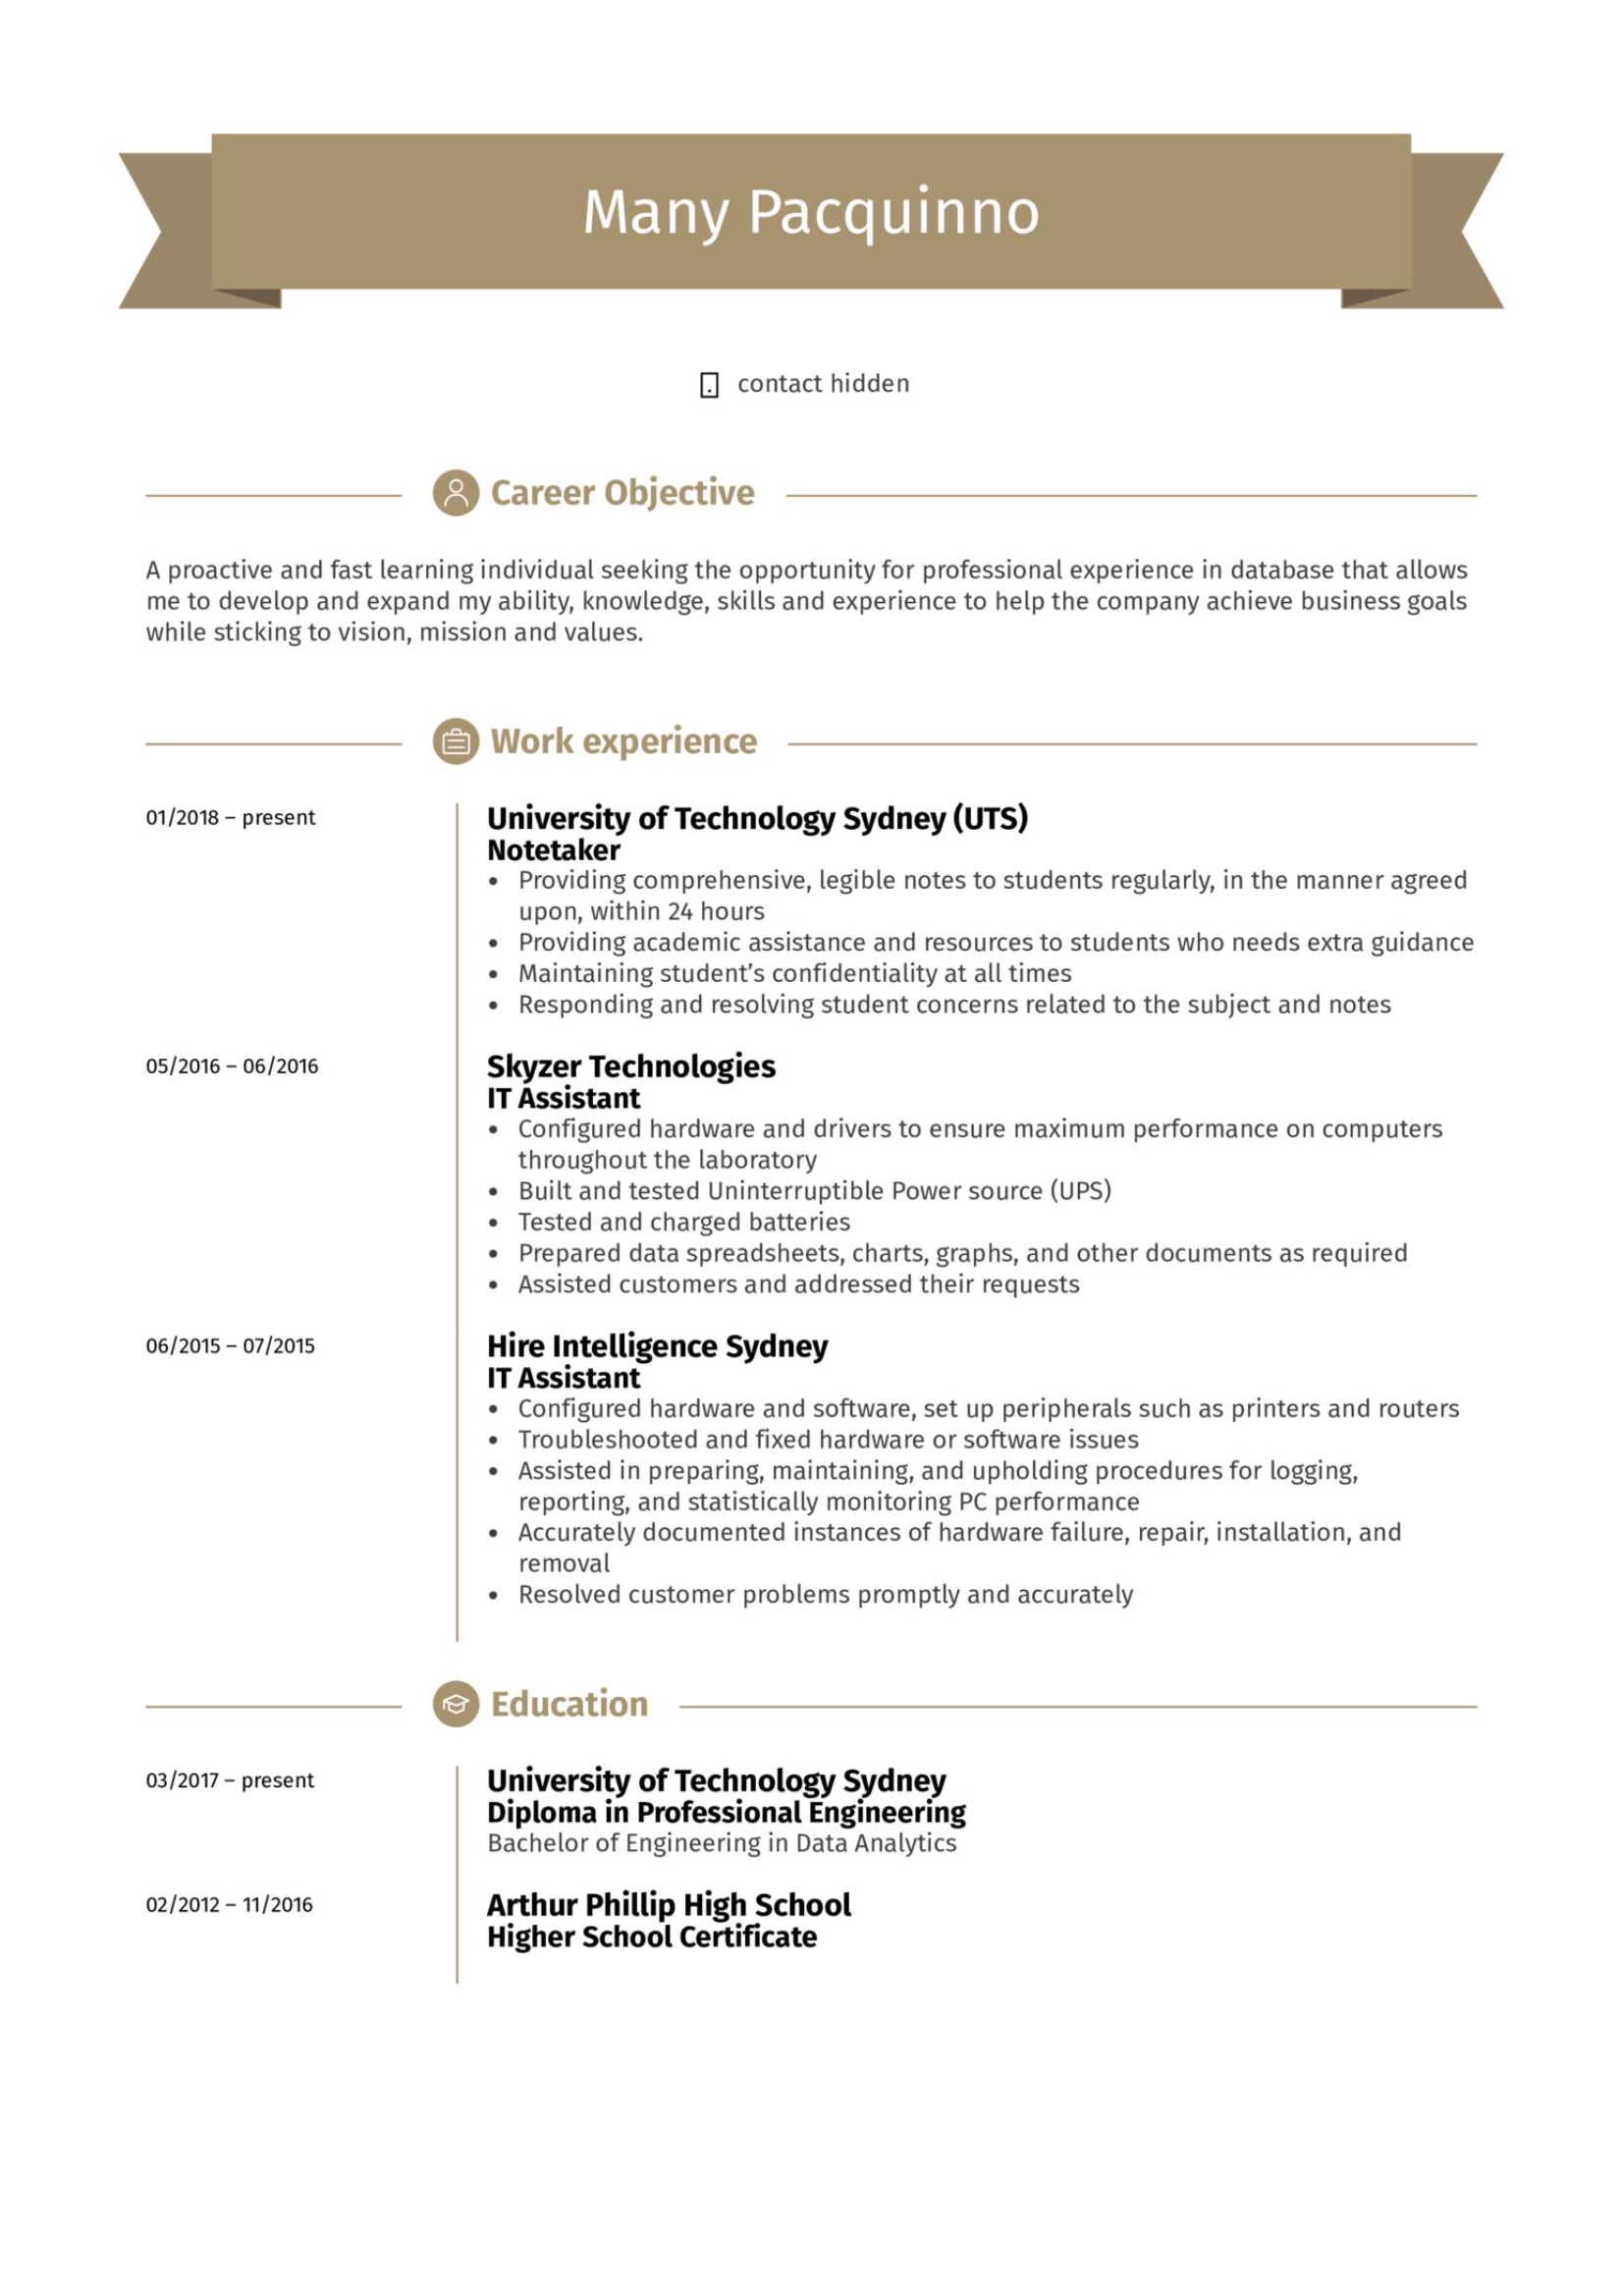 IT Assistant Resume .Docx (Word)